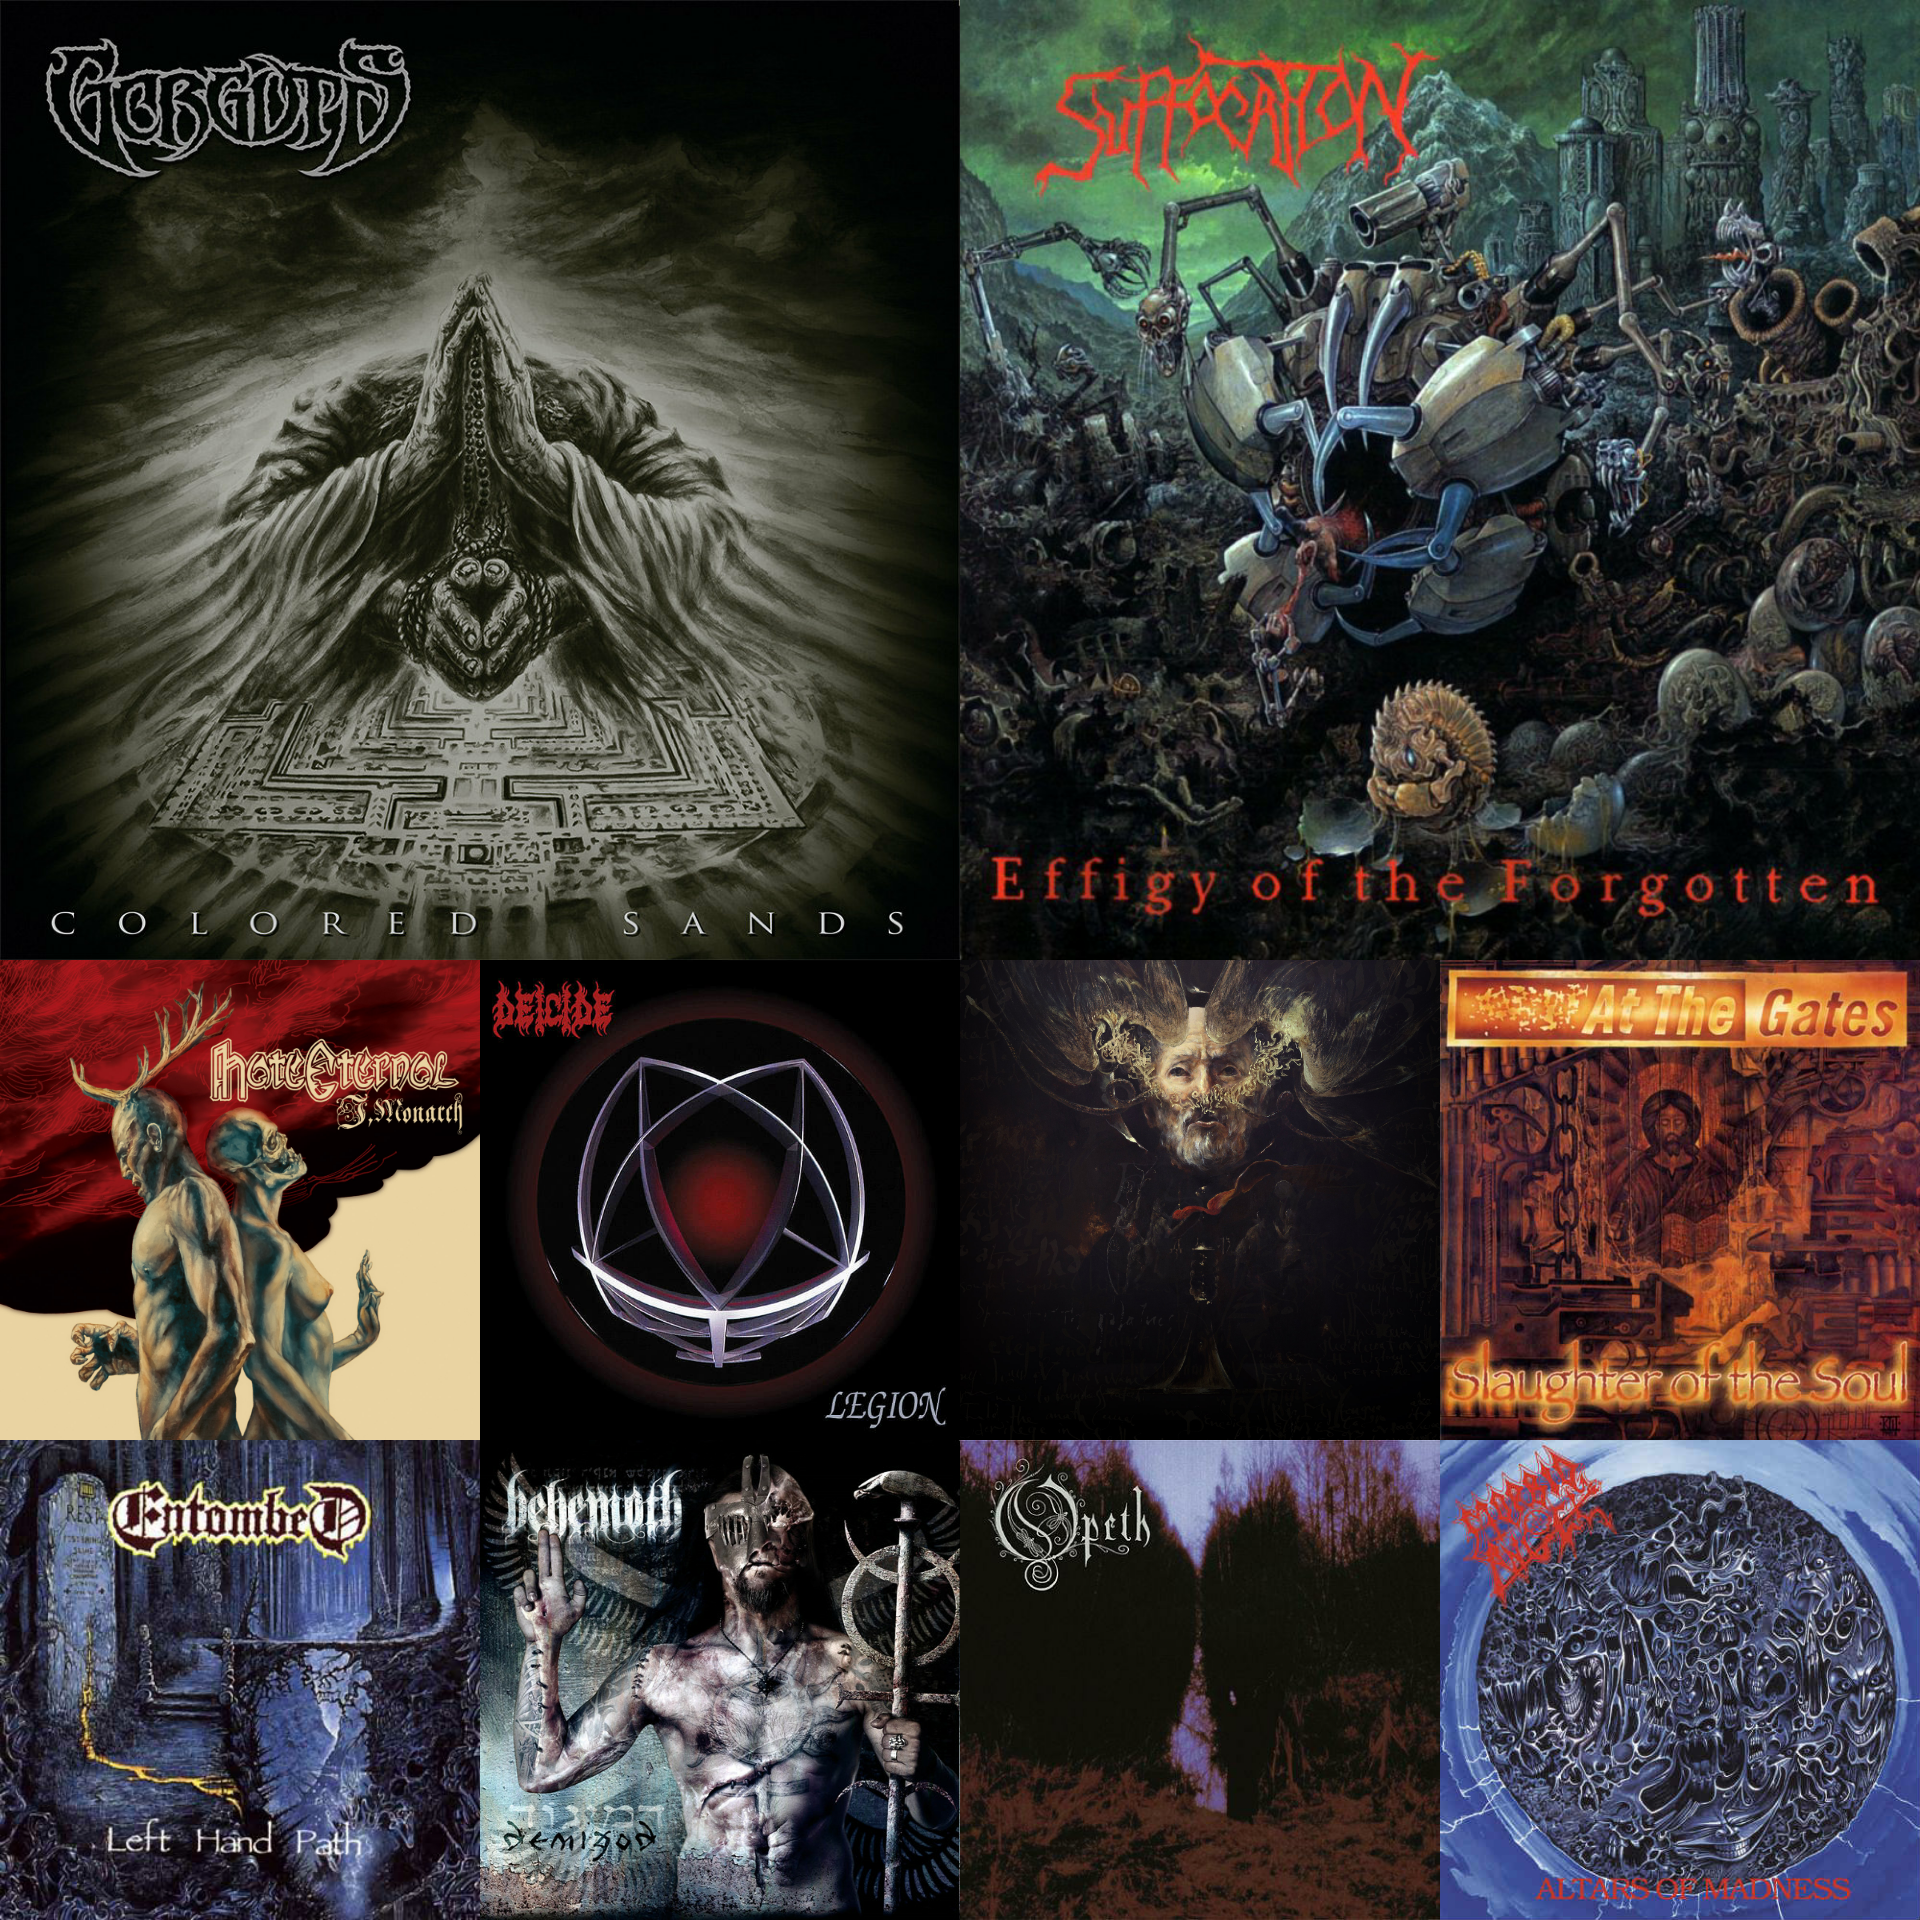 the best melodic death metal bands